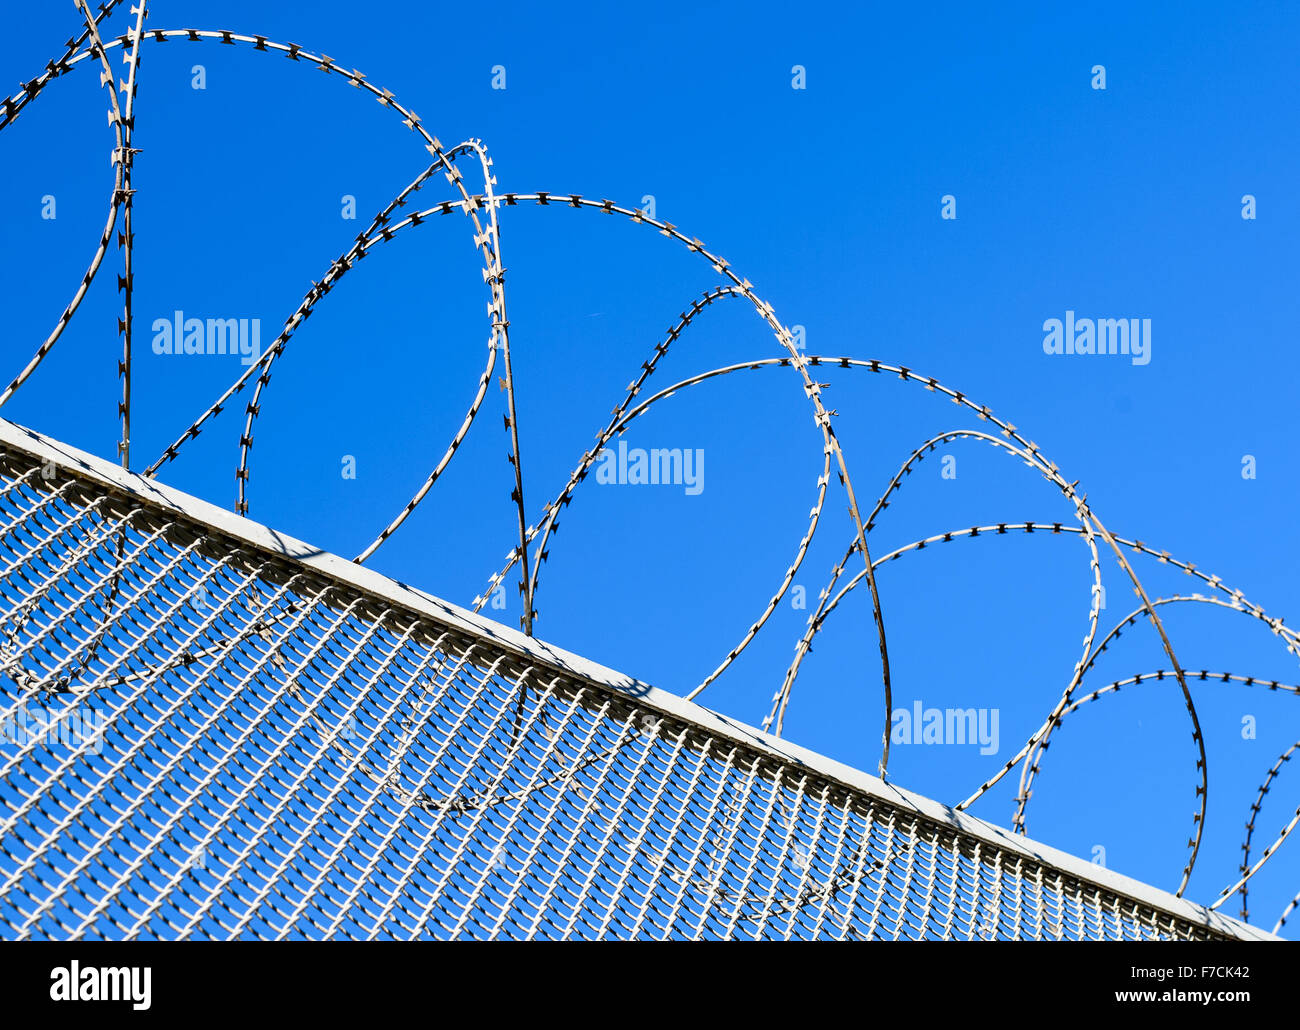 Fence with a barbed wire against the blue sky. Illustration of the concept of freedom or liberty. - Stock Image